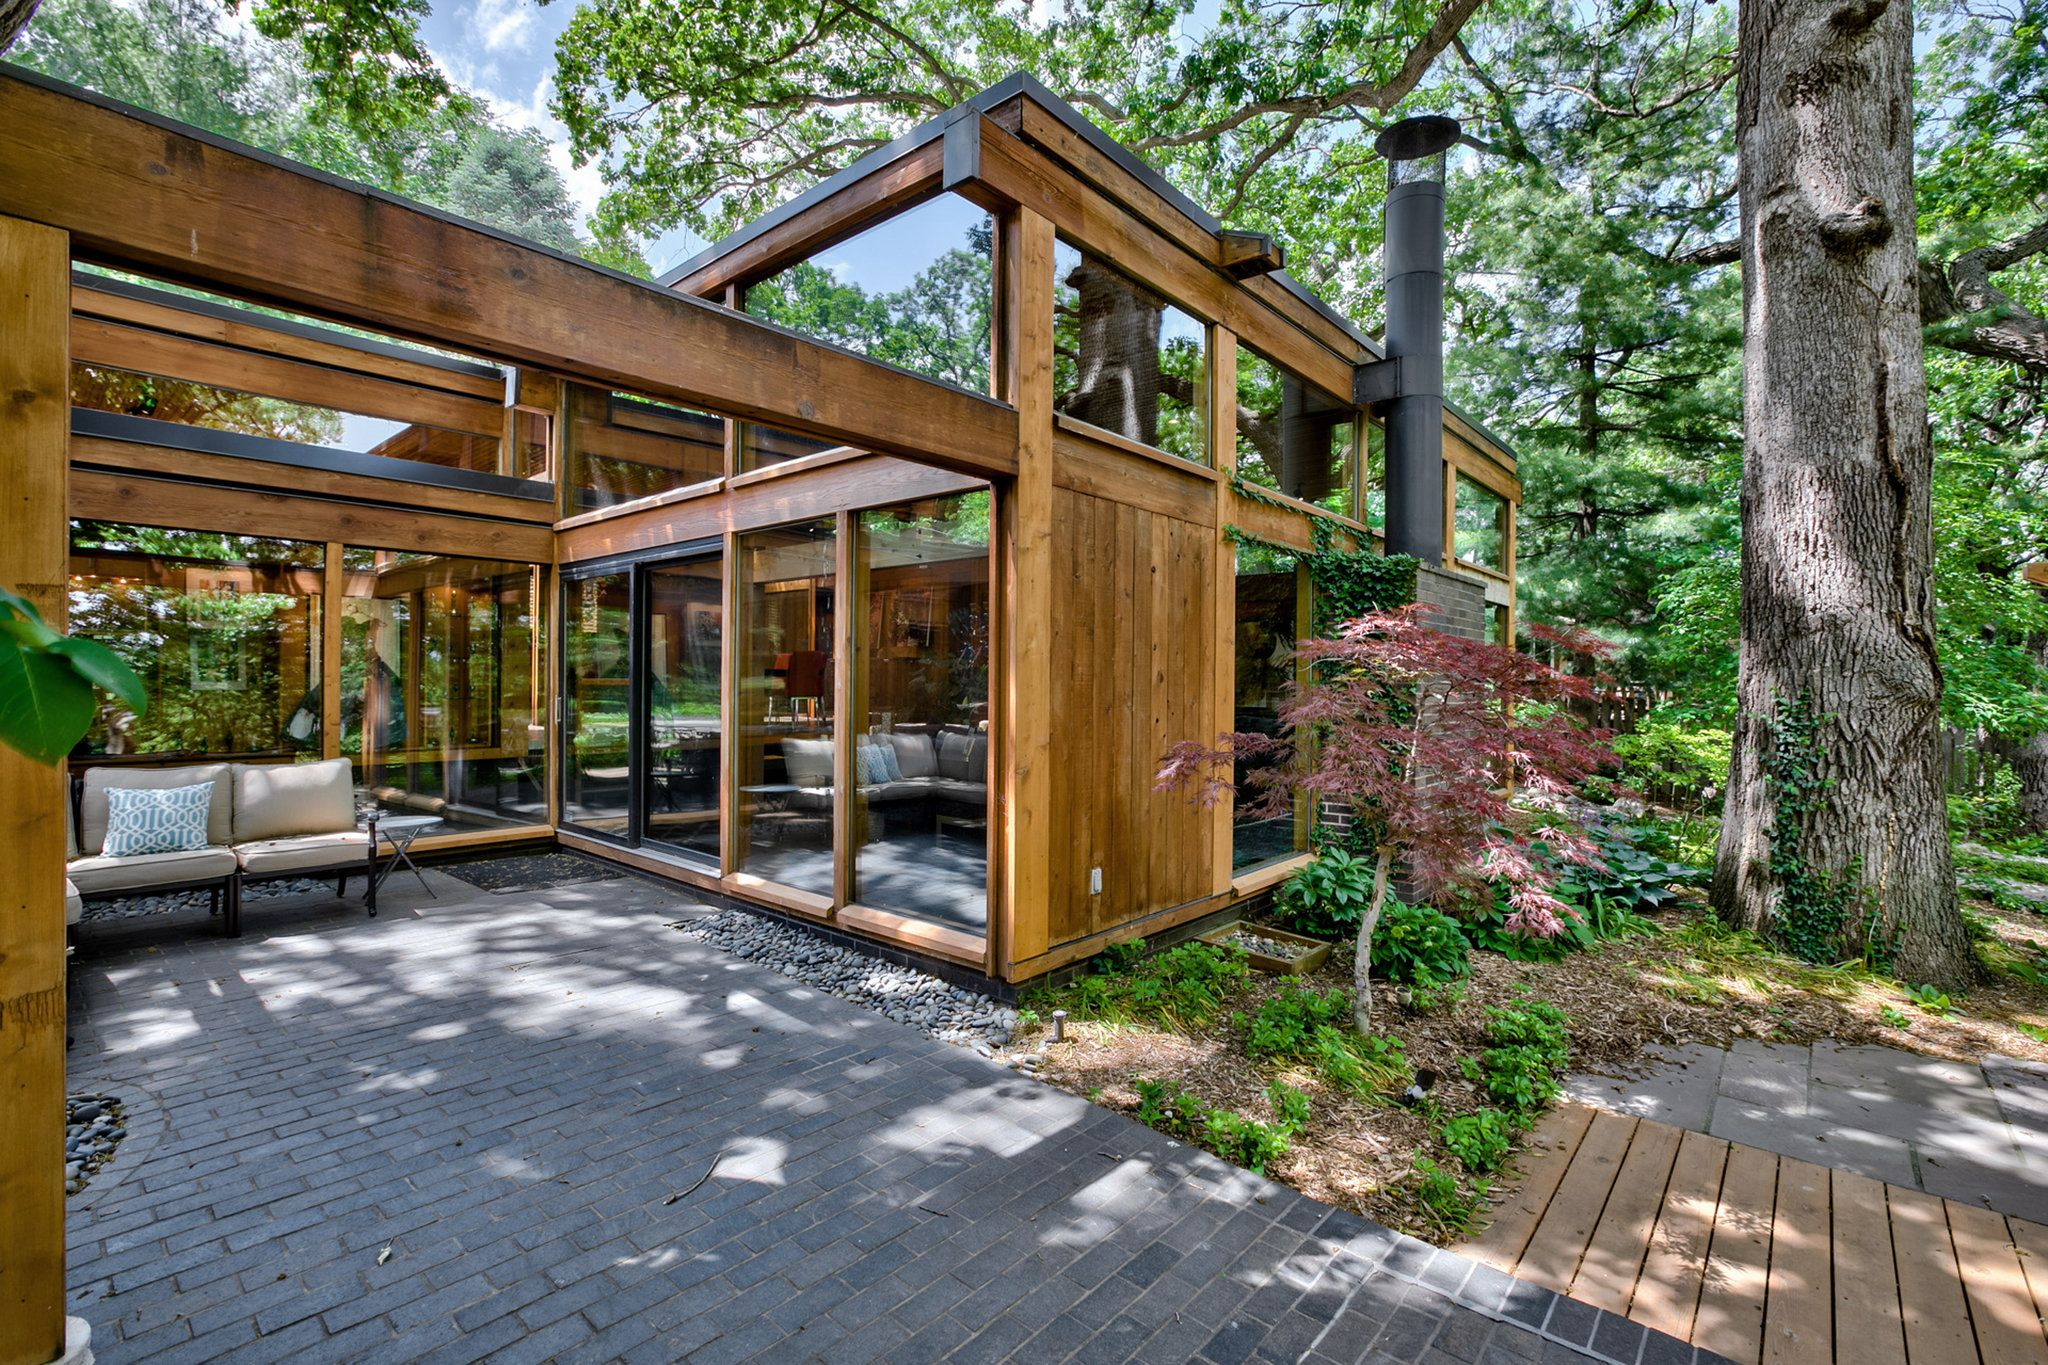 Modern Stone Cottage a 1705 stone cottage in new hope, pa.; a cedar house in omaha; and